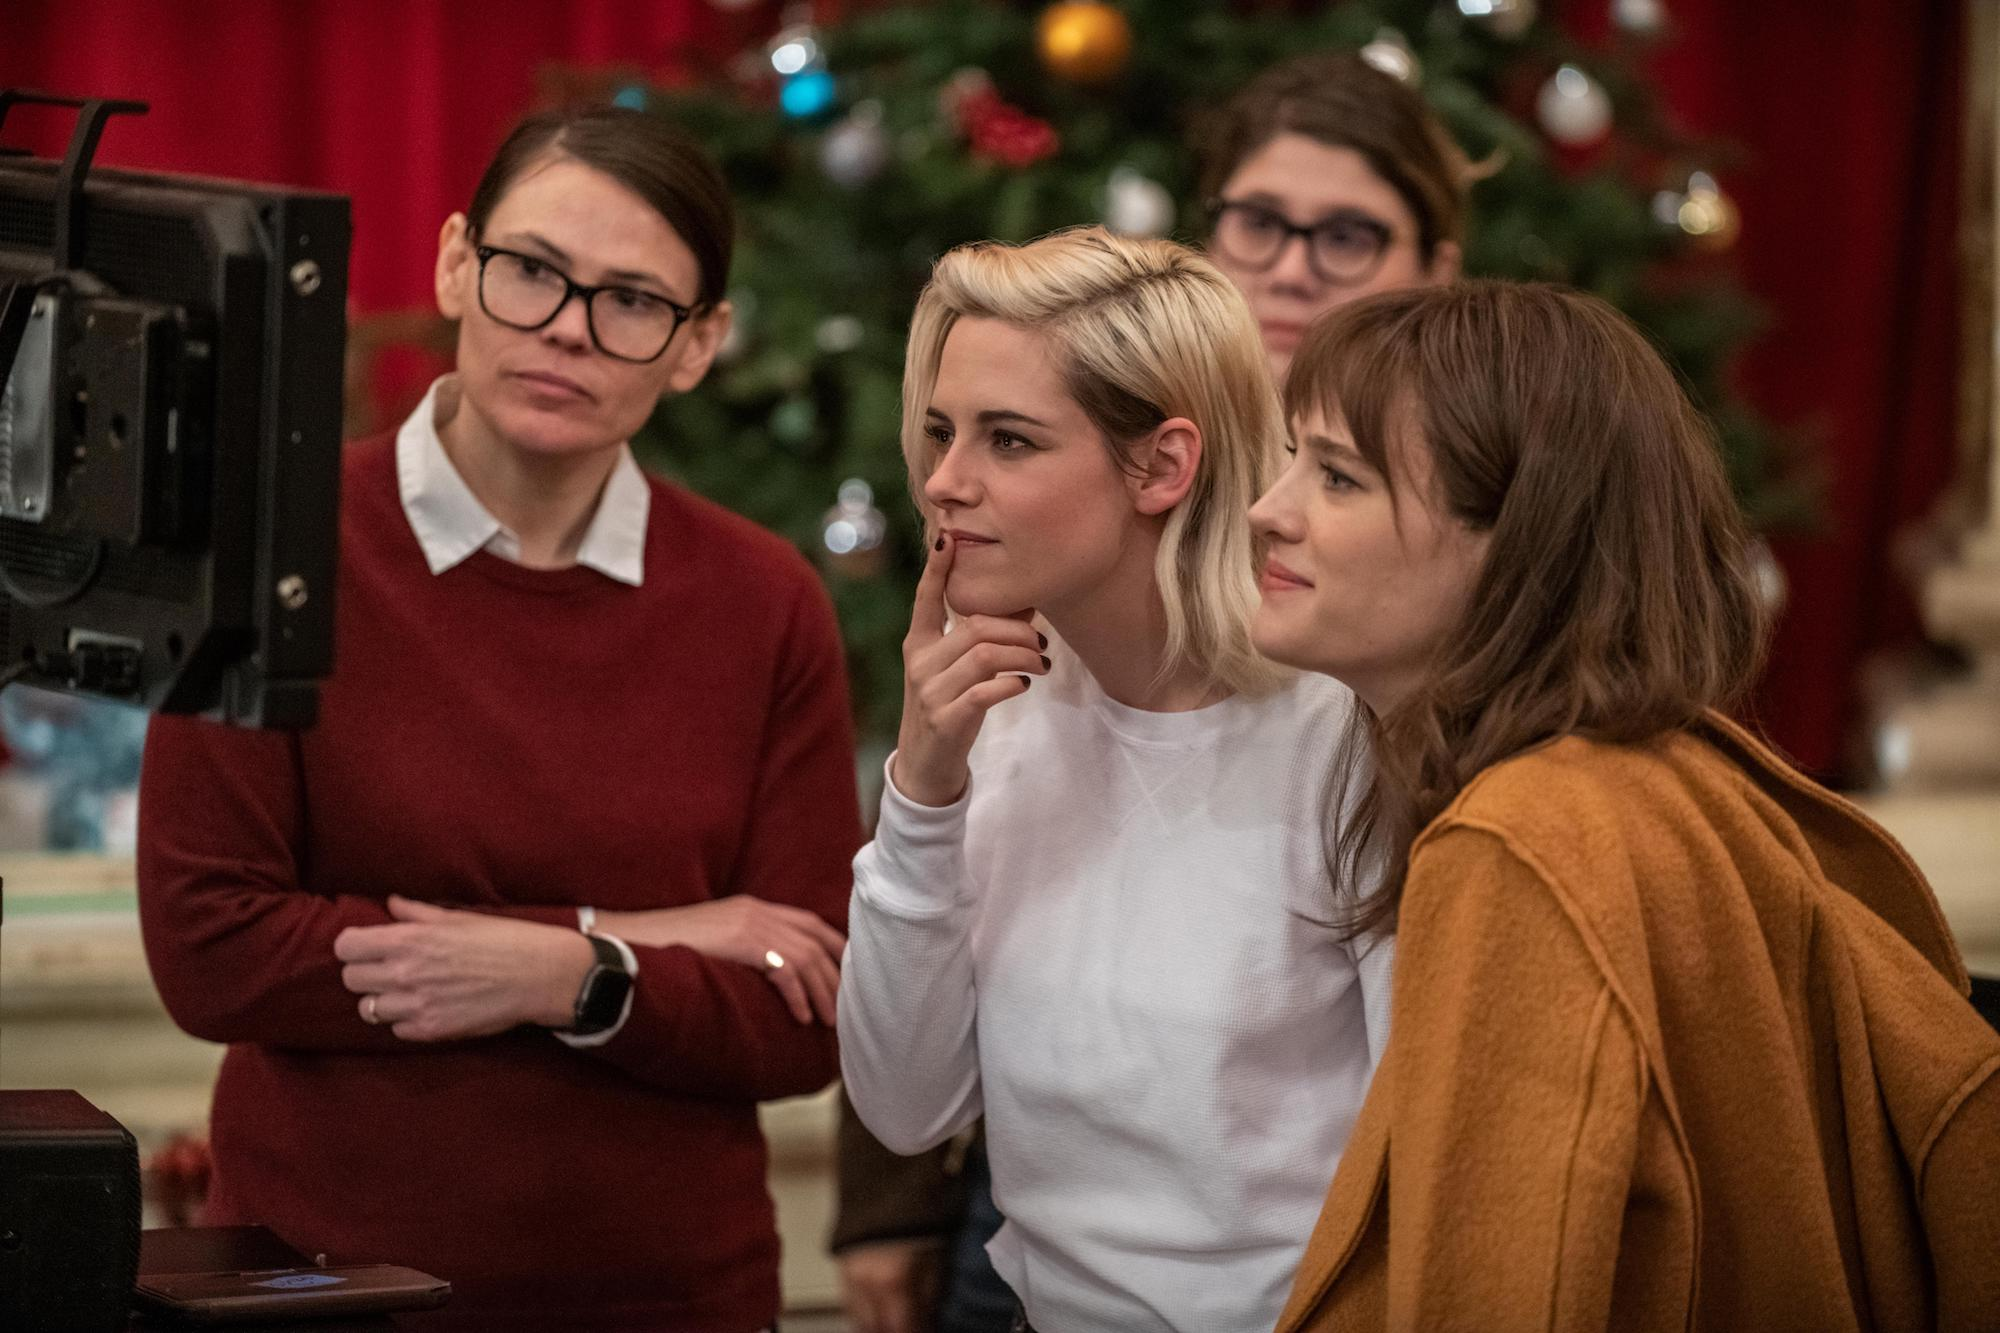 Clea DuVall (writer/director), Kristen Stewart (who plays Abby), and Mackenzie Davis (who plays Harper) on the set of 'Happiest Season'